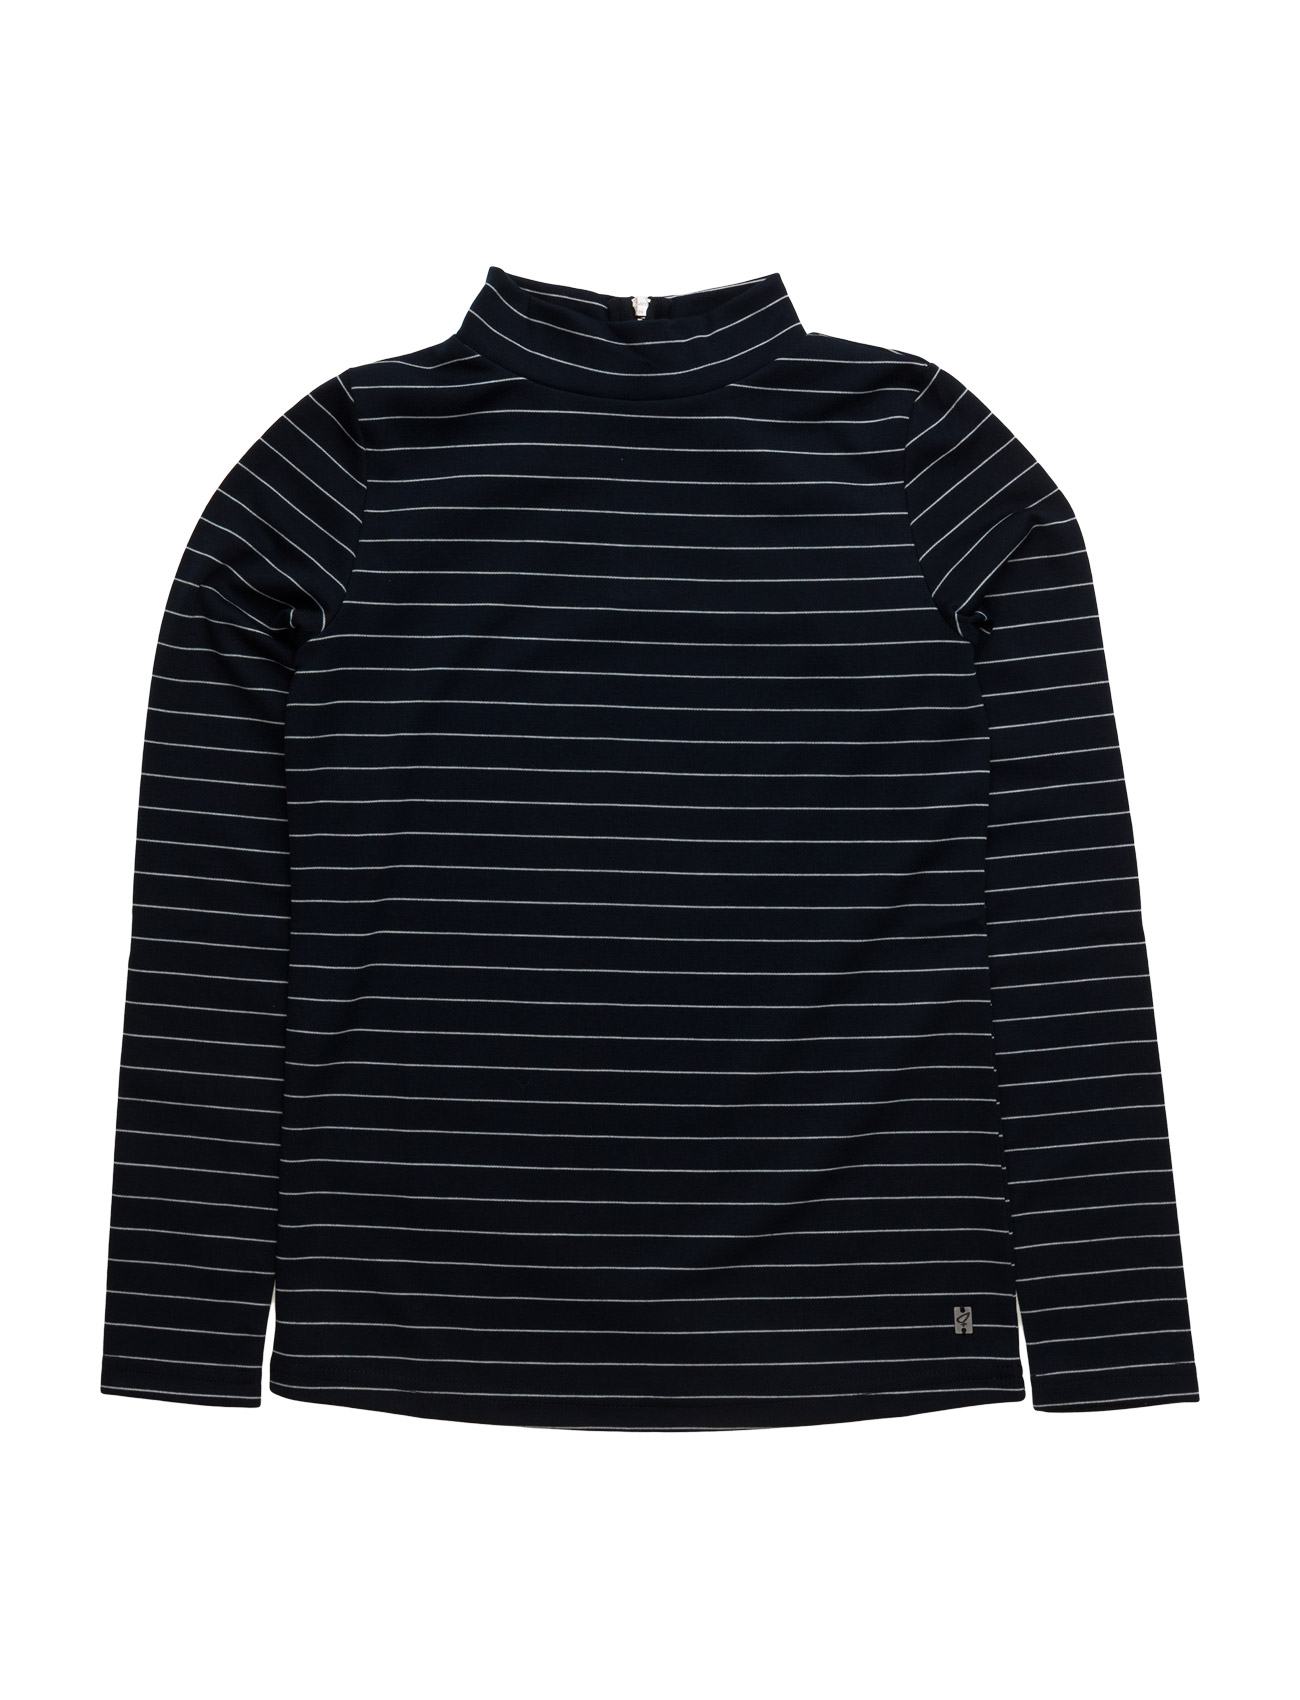 Tee L/S With Turtleneck